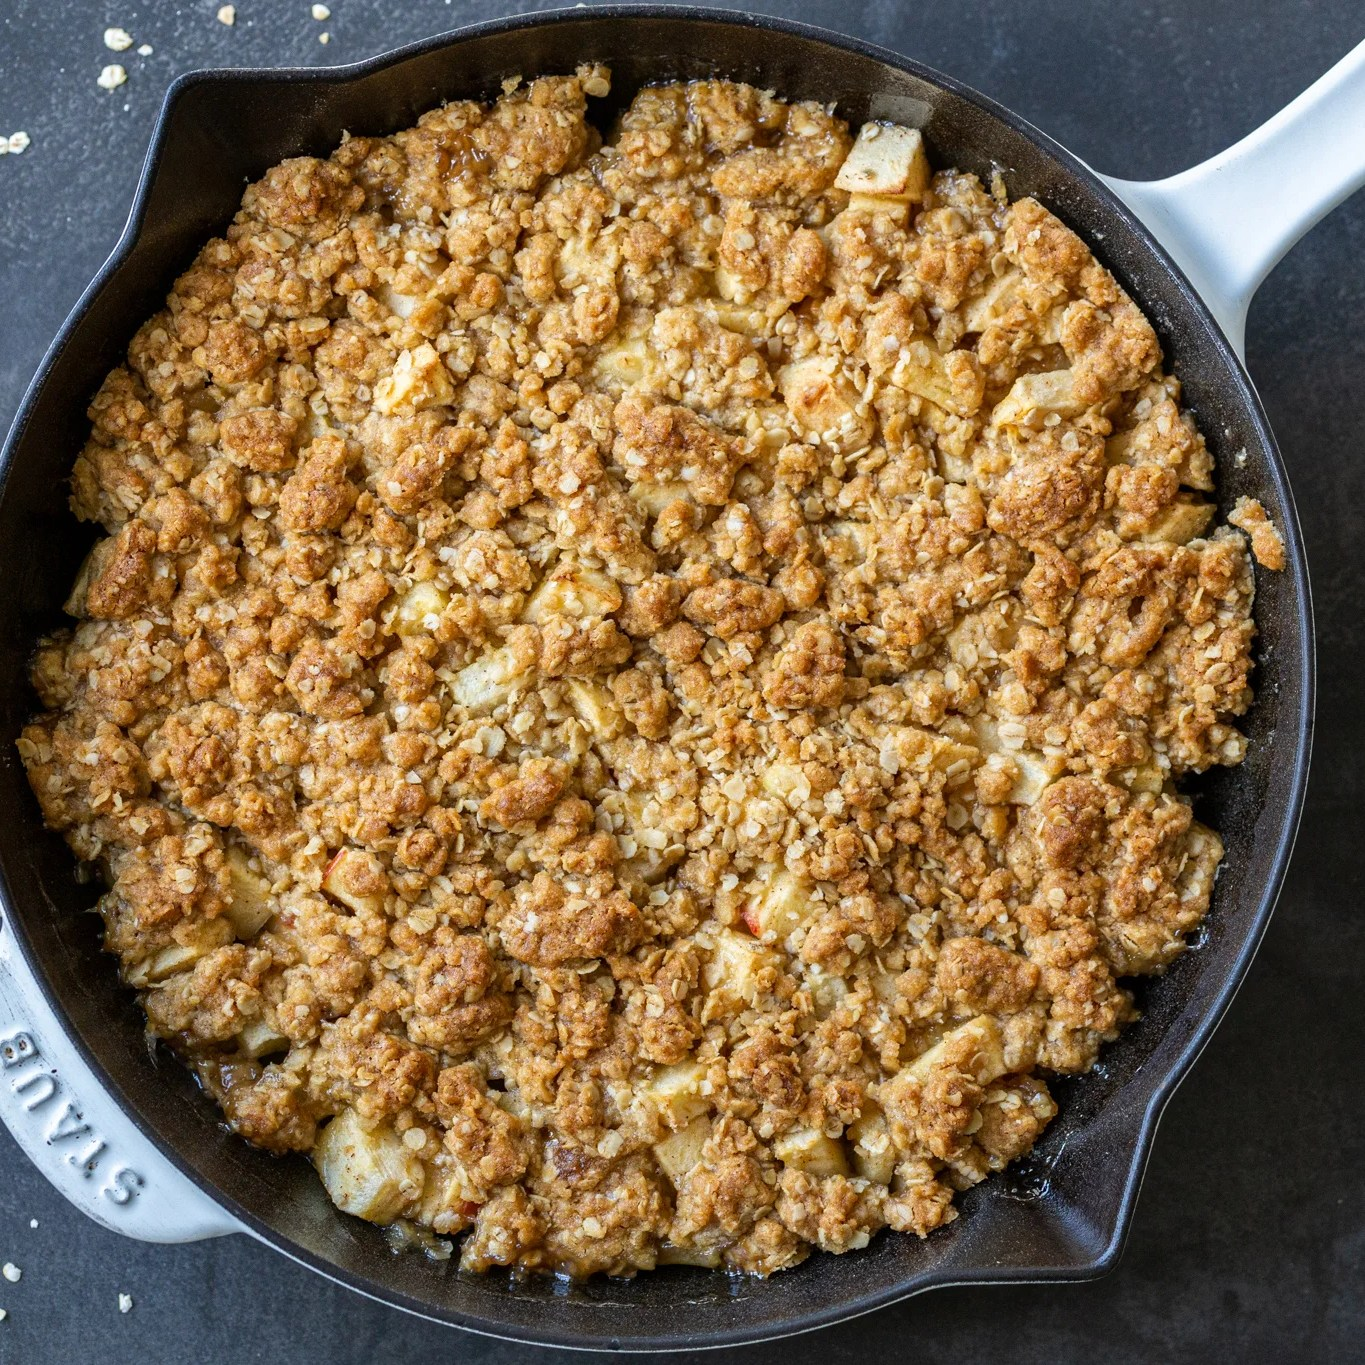 baked apple crisp in a pan